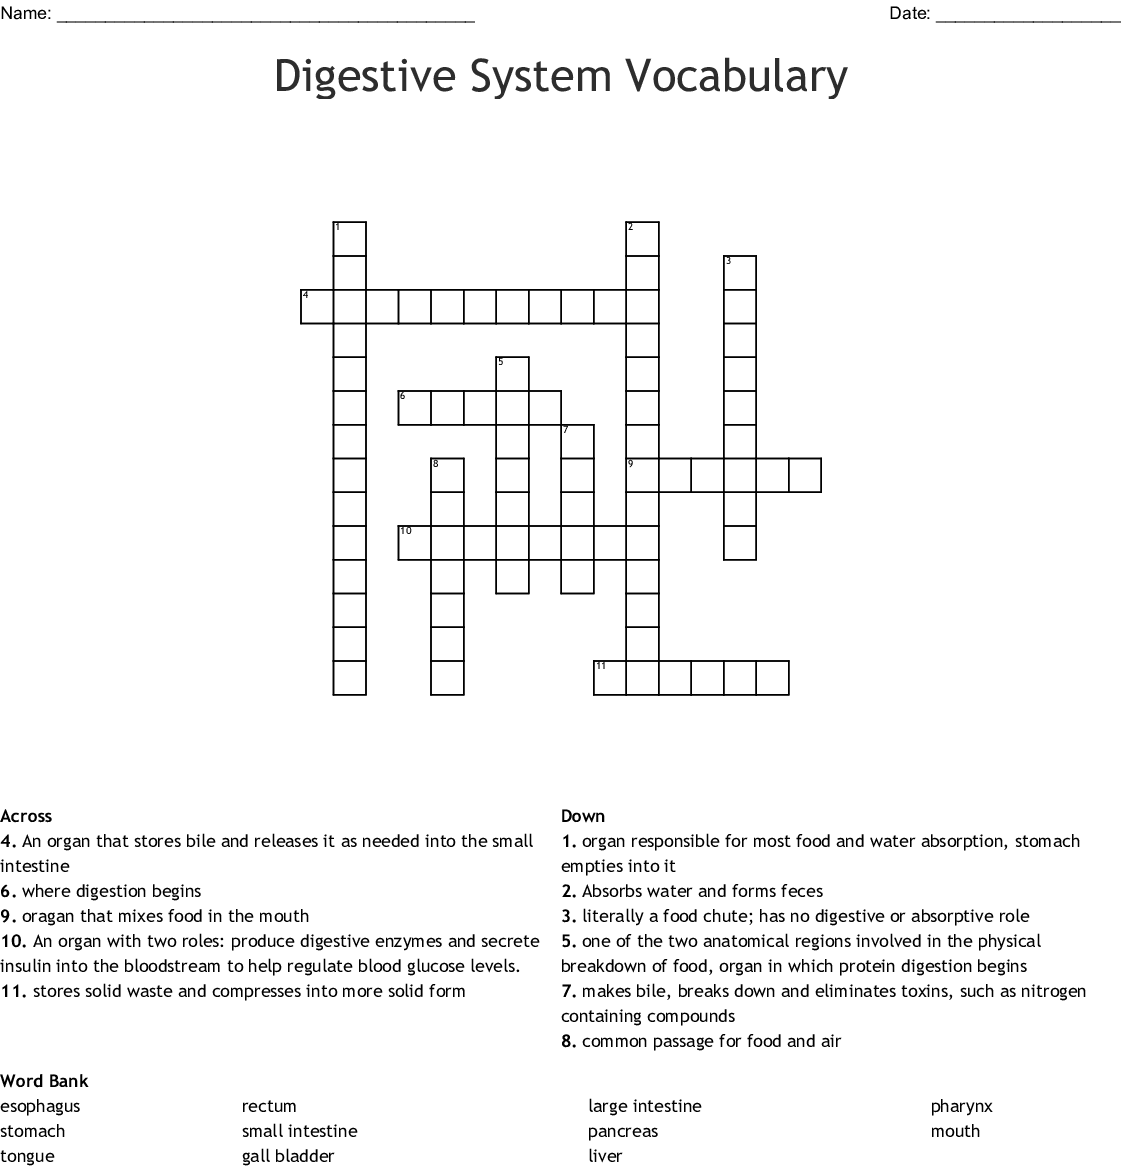 Digestive System Vocabulary Crossword Wordmint